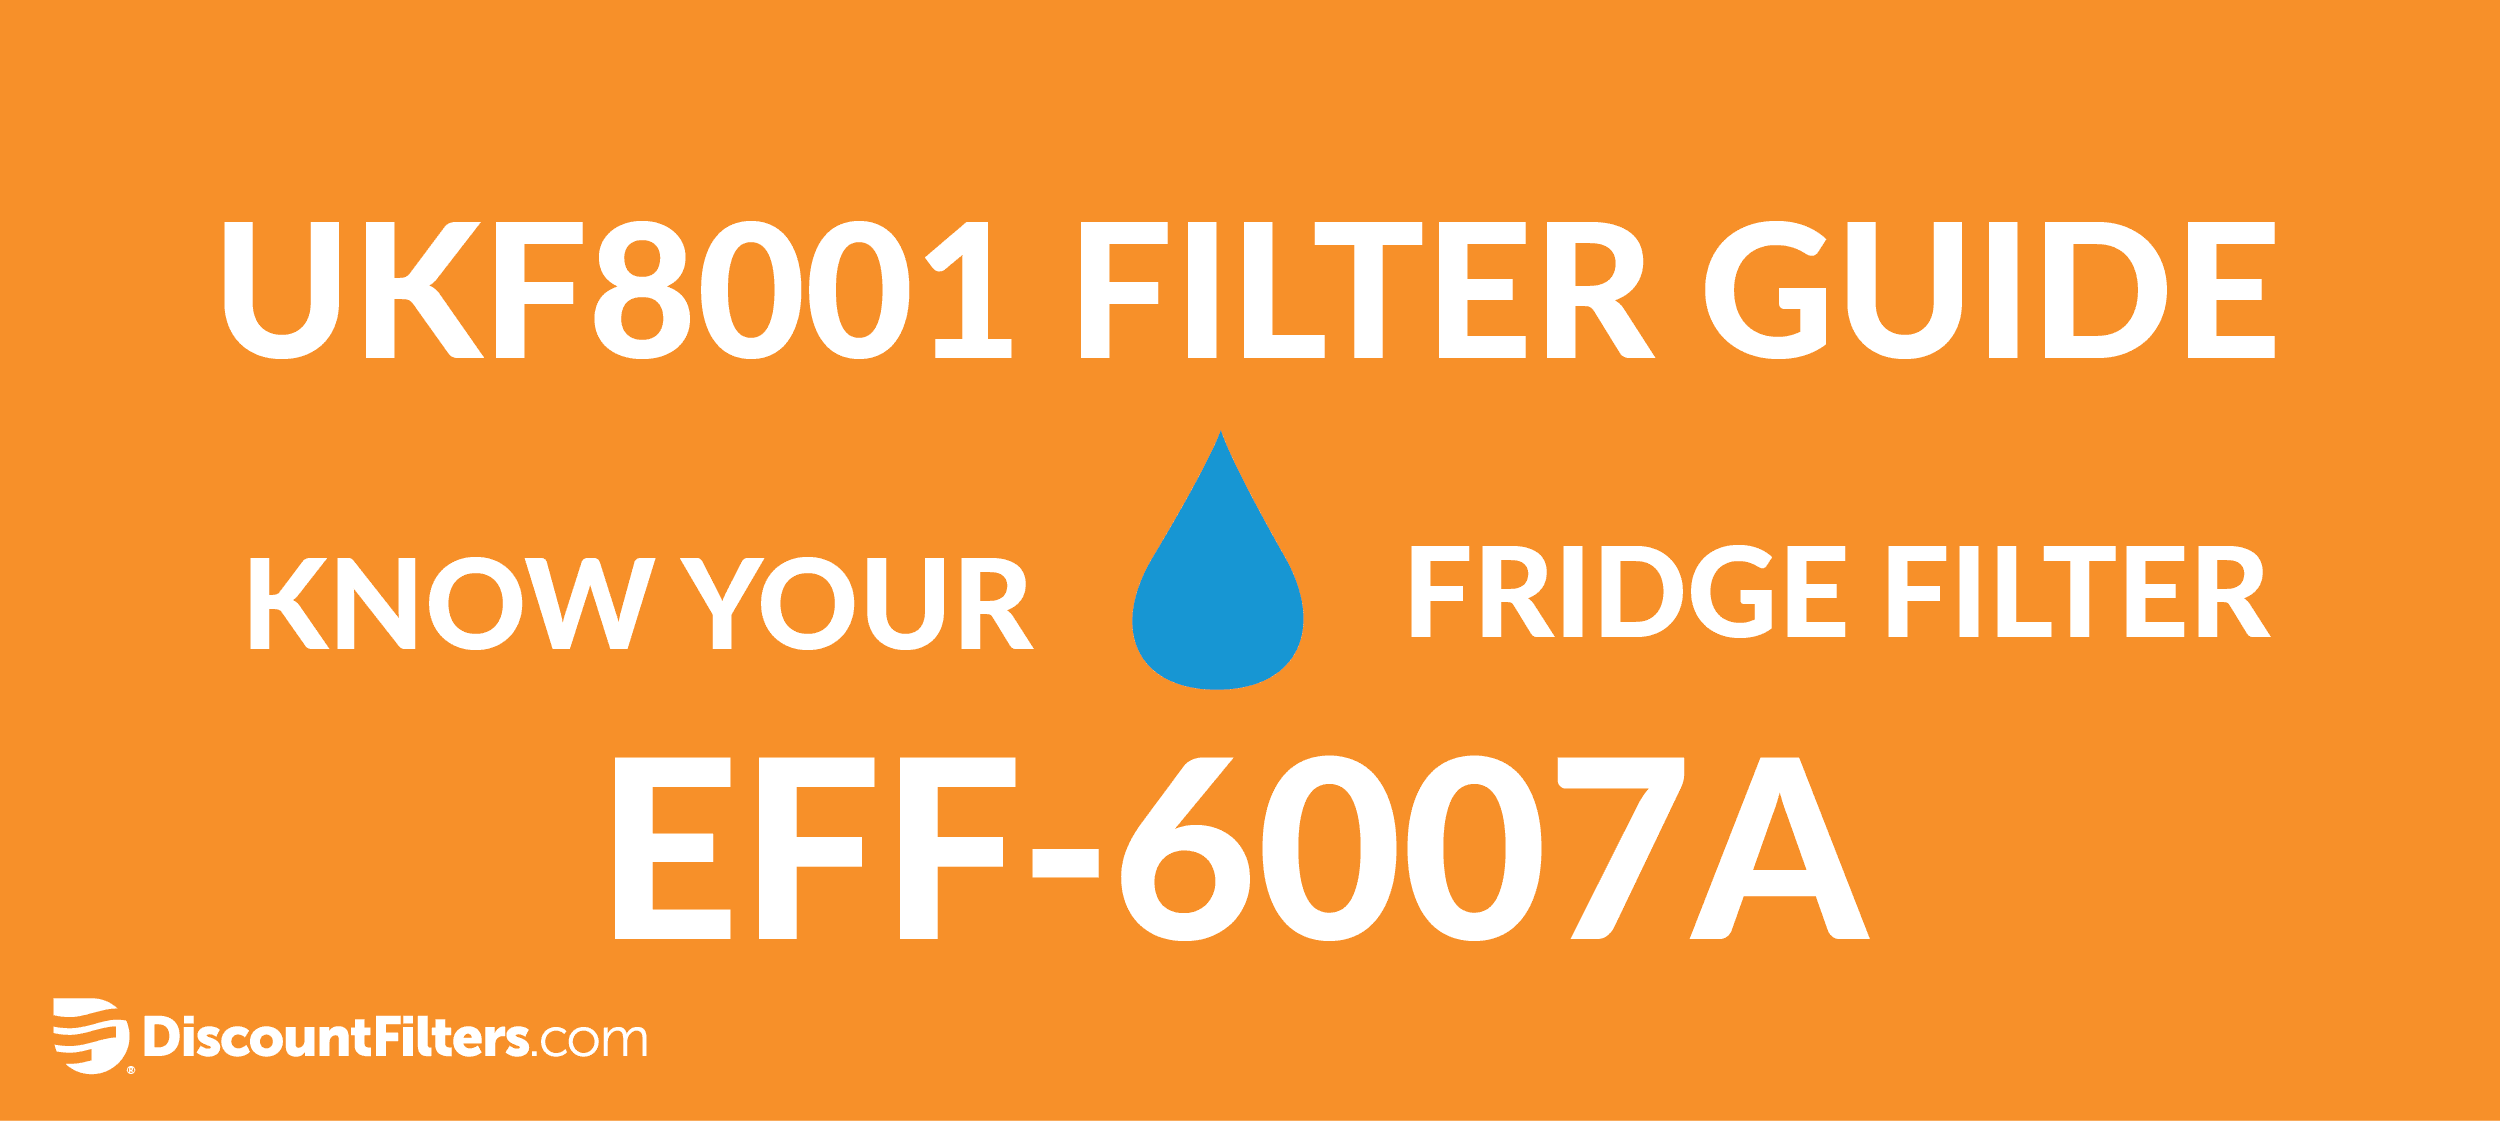 UKF8001 FILTER GUIDE eff-6007a replacement filter